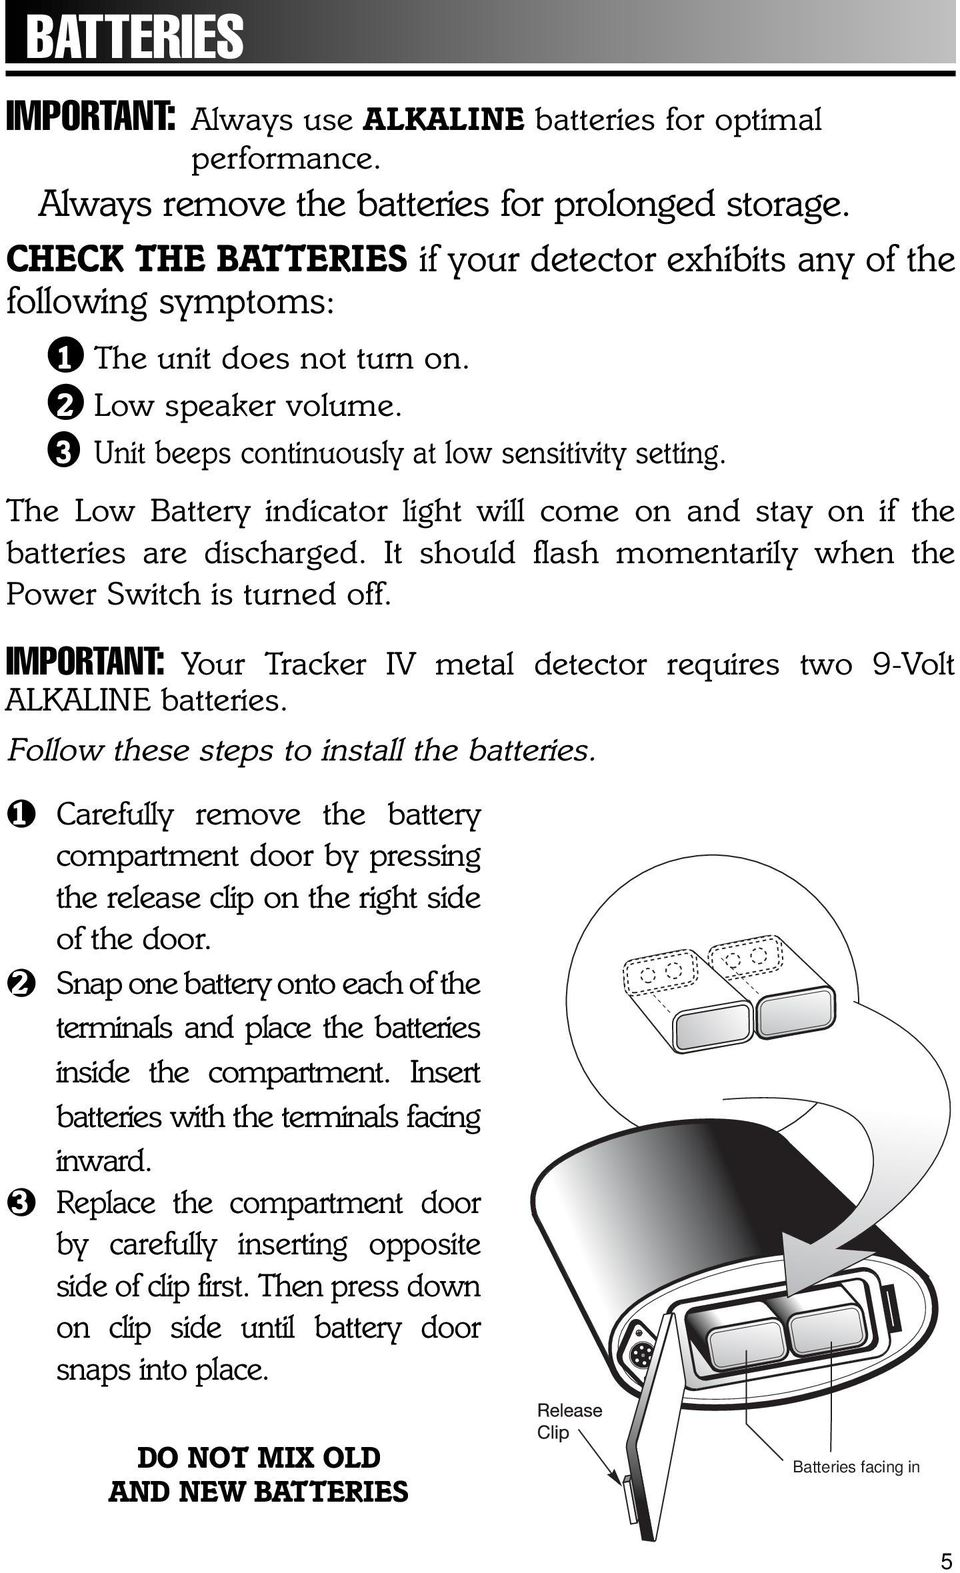 Owner S Manual Important Facts To Know About Your Metal Detector Pdf Simple Circuit Bfo The Low Battery Indicator Light Will Come On And Stay If Batteries Are Discharged